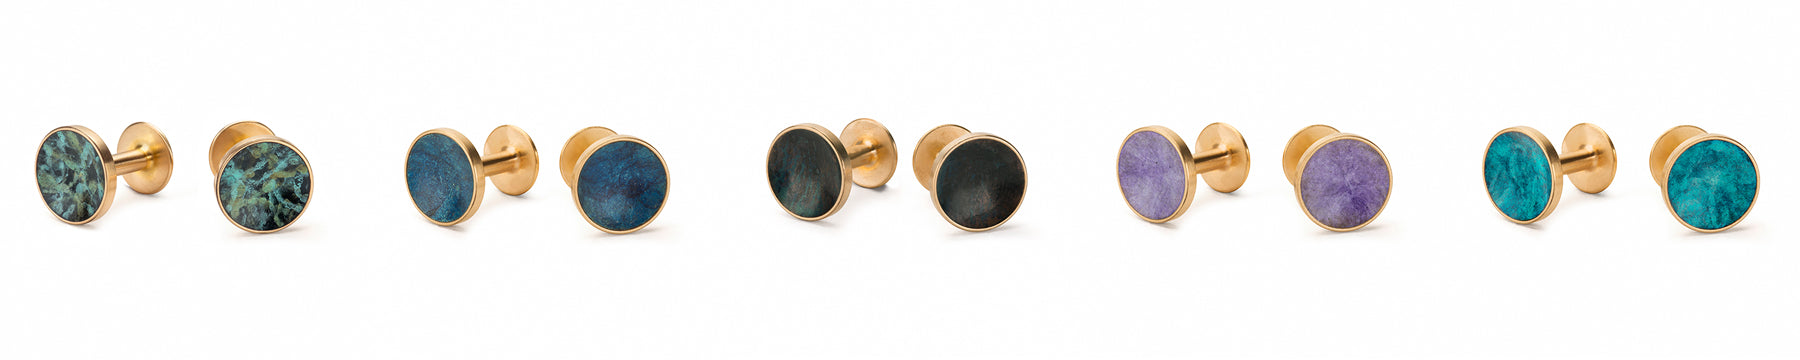 patina cufflinks | Alice Made This